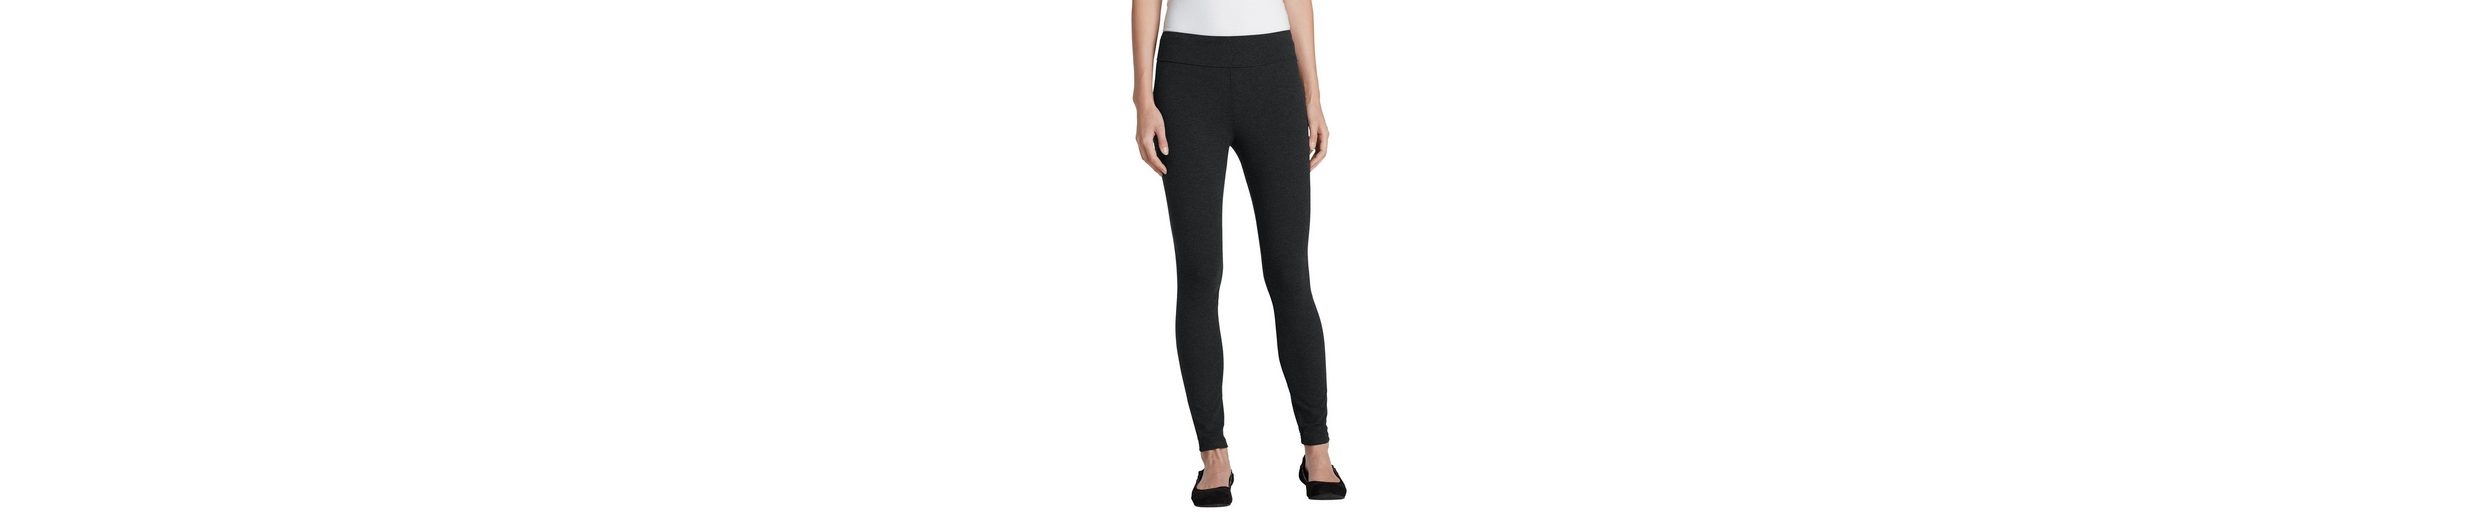 Eddie Bauer Girl on the go transdry Leggings Rabatt In Deutschland geiCpTK8w